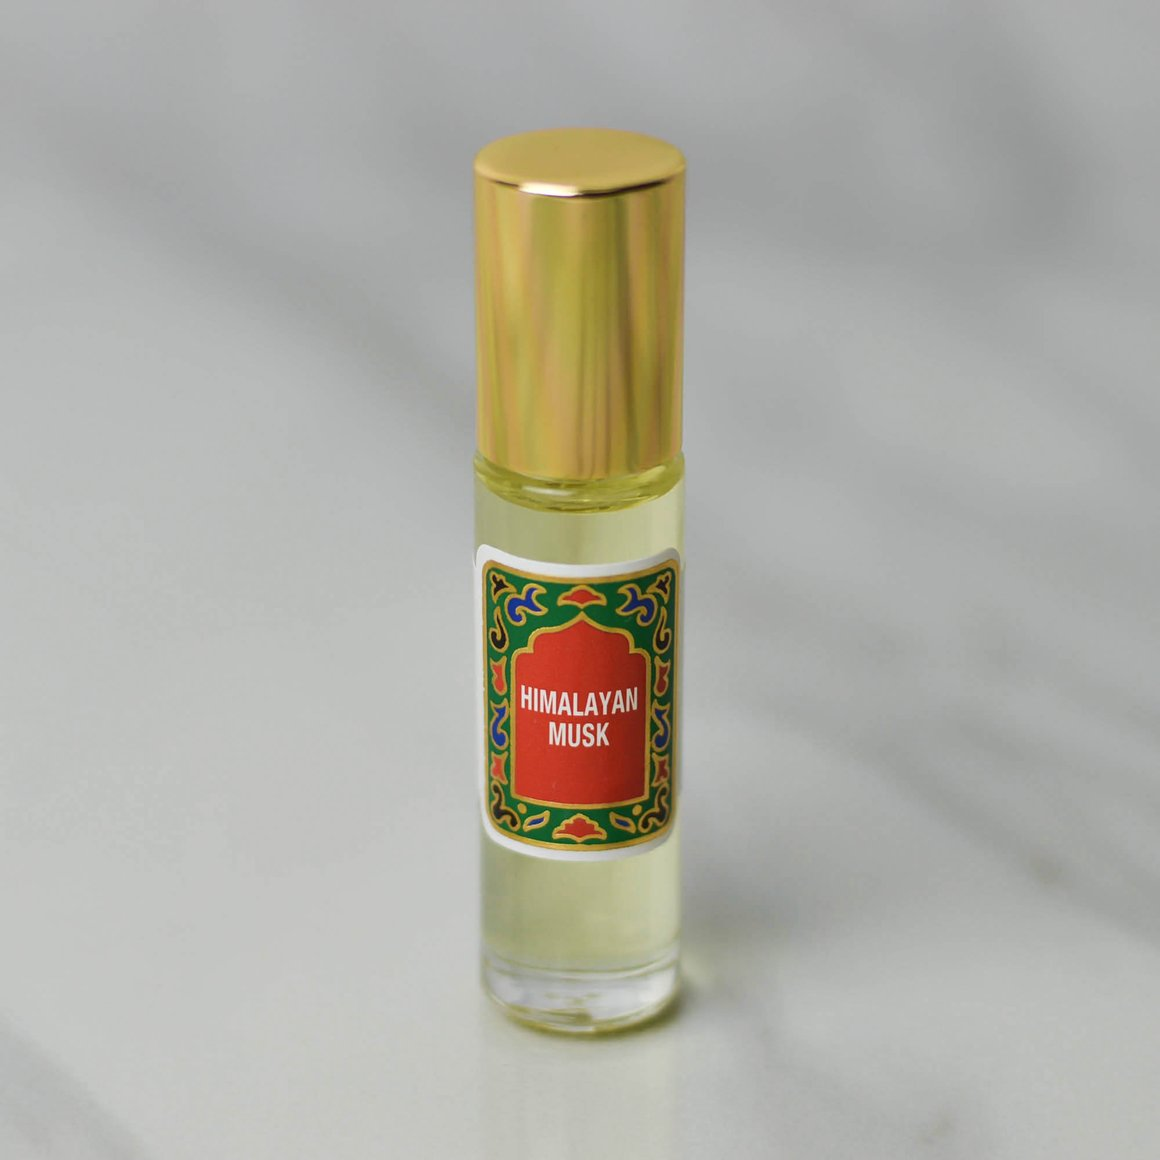 Nemat fragrances